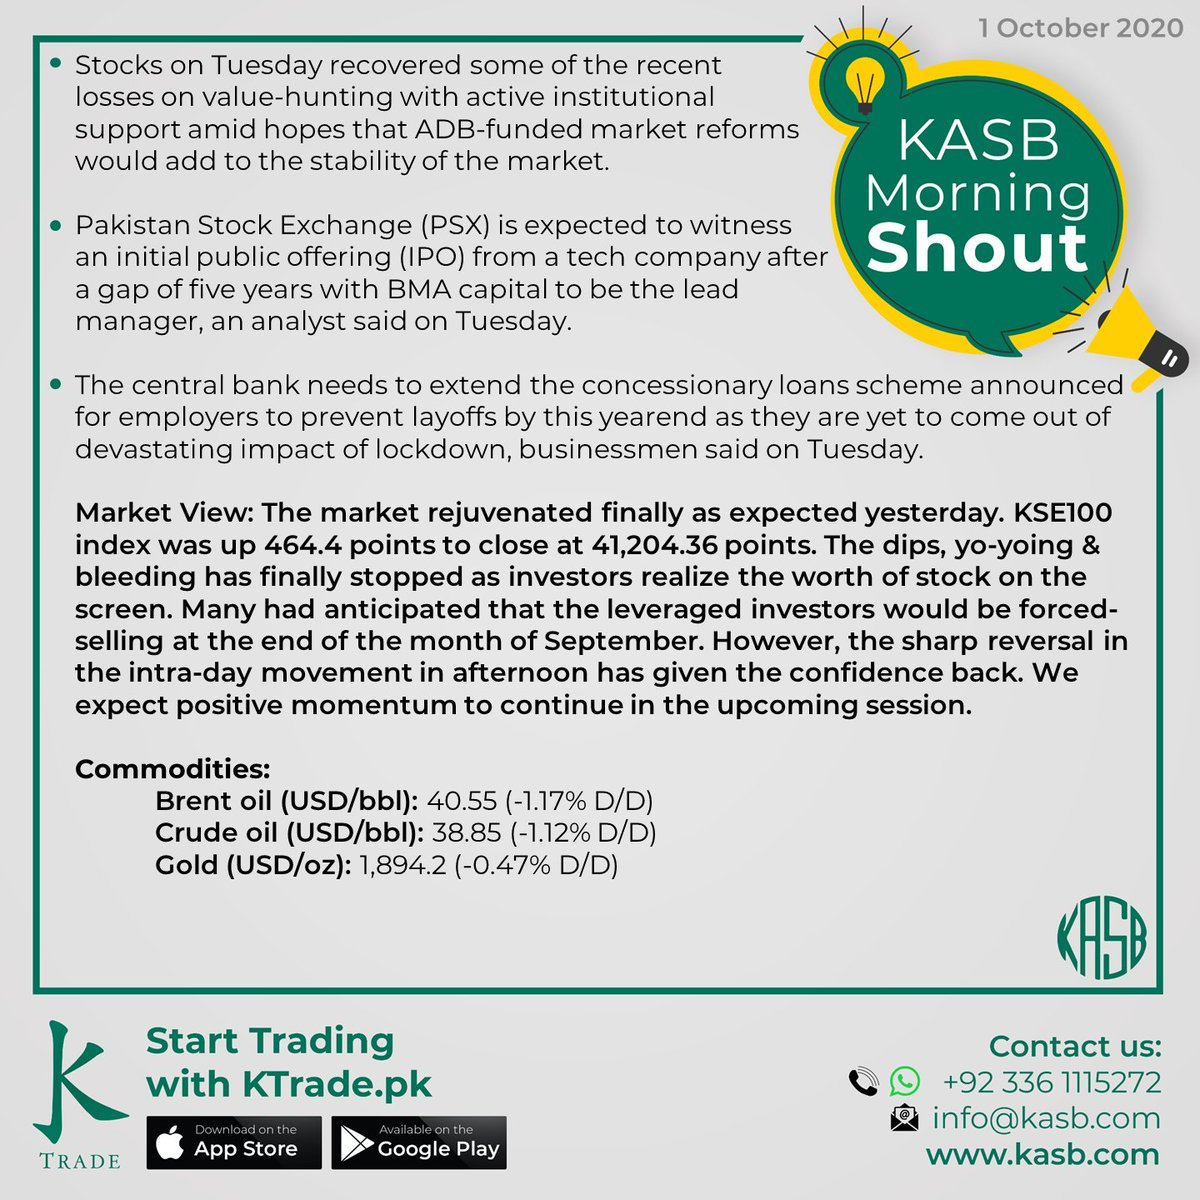 KASB Morning Shout: Our views on today's news #kasb #smartinvesting #psx #stockmarket #KTrade #onlinetrading #pakistaneconomy #imrankhan #sbp #inflation #kse100 #brokeragehouse #psxstocks #marketupdate #emergingmarkets #frontiermarkets #news #morning #today #views https://t.co/m1YvGHJQ34